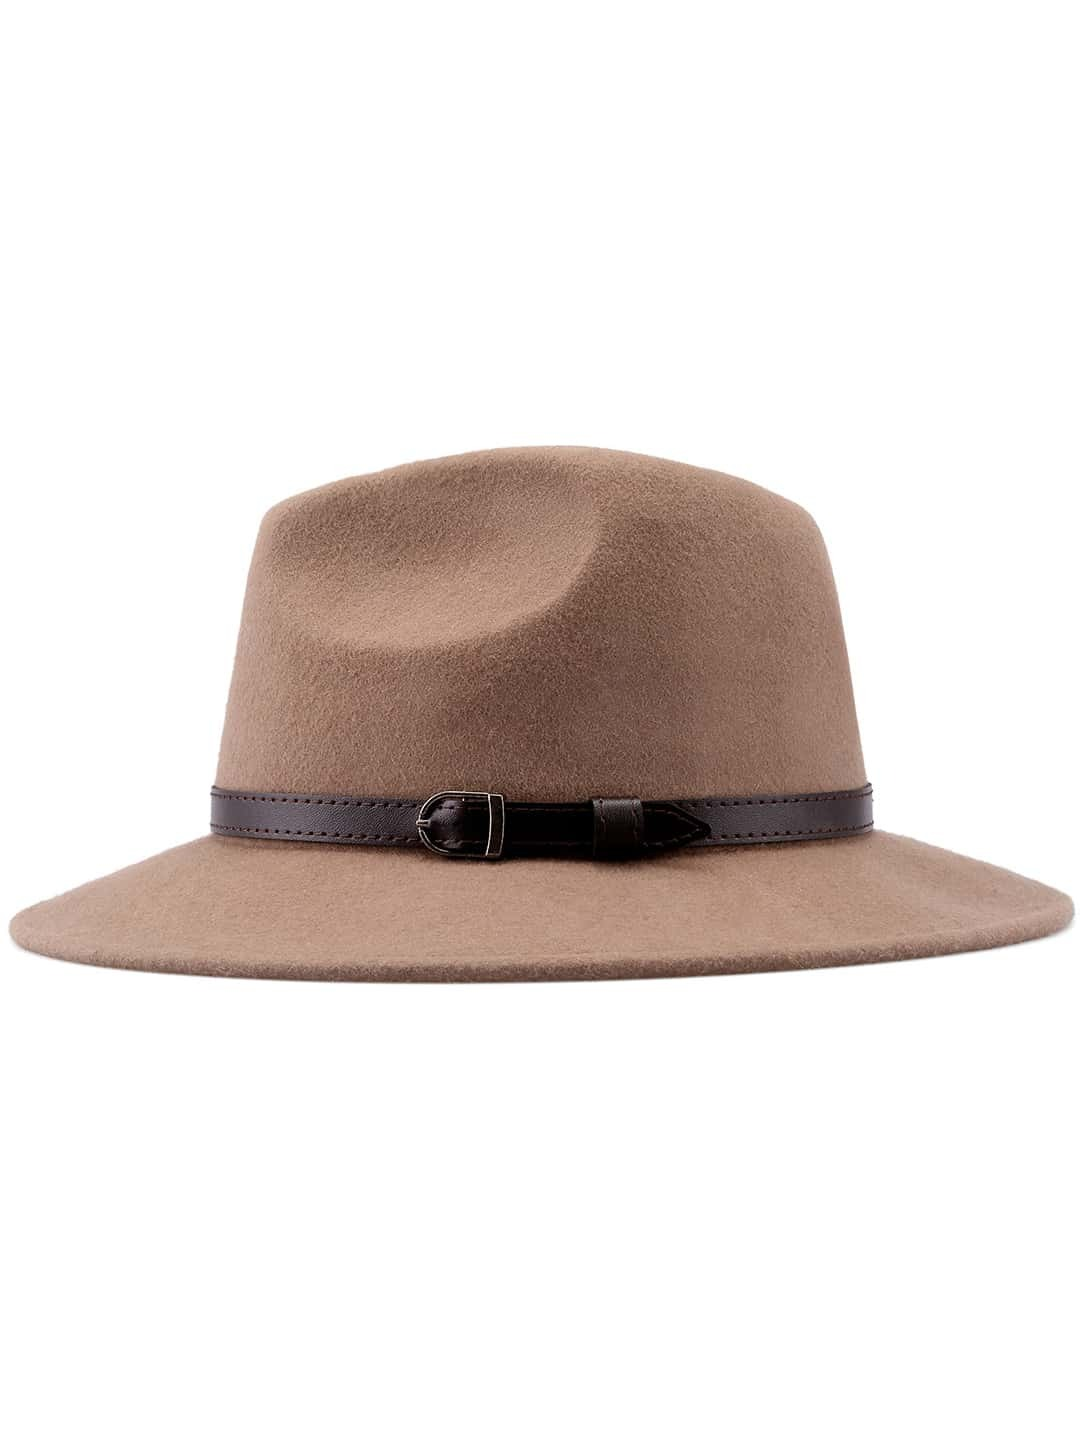 Khaki Buckle Strap Embellished Hat